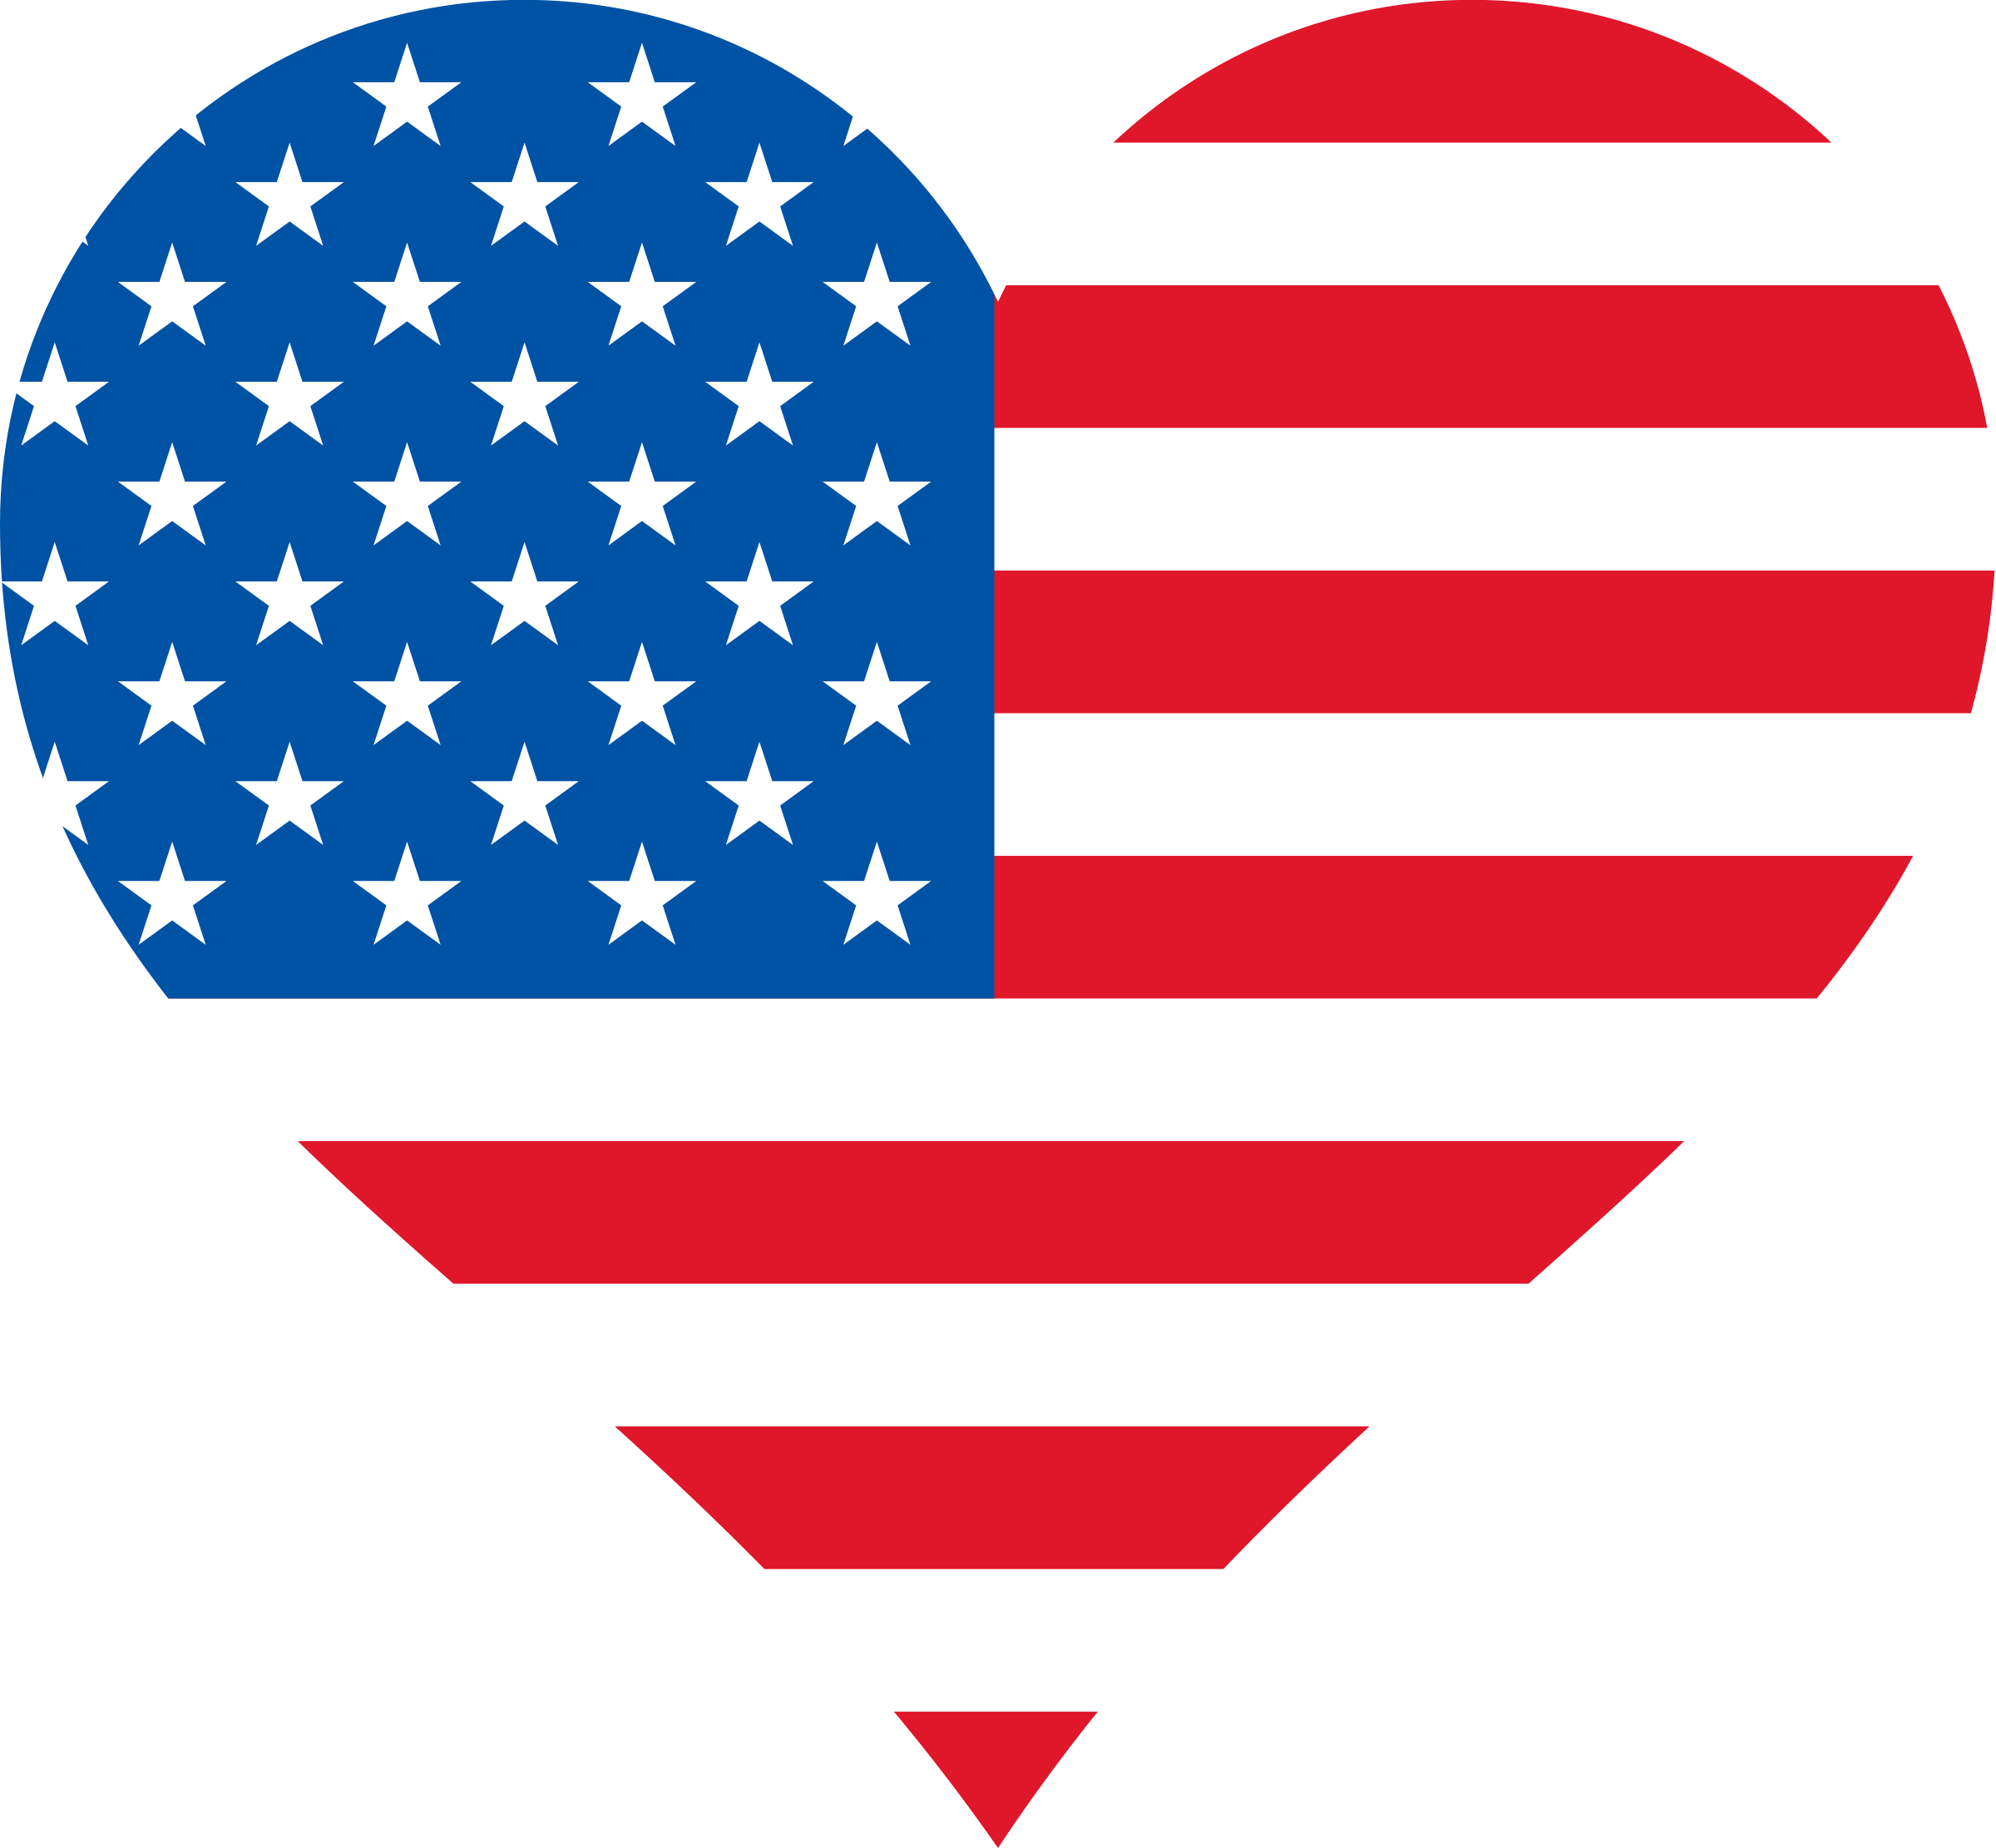 Air force star clipart png freeuse download Clipart - Stars and Stripes heart shaped, USA heart flag png freeuse download